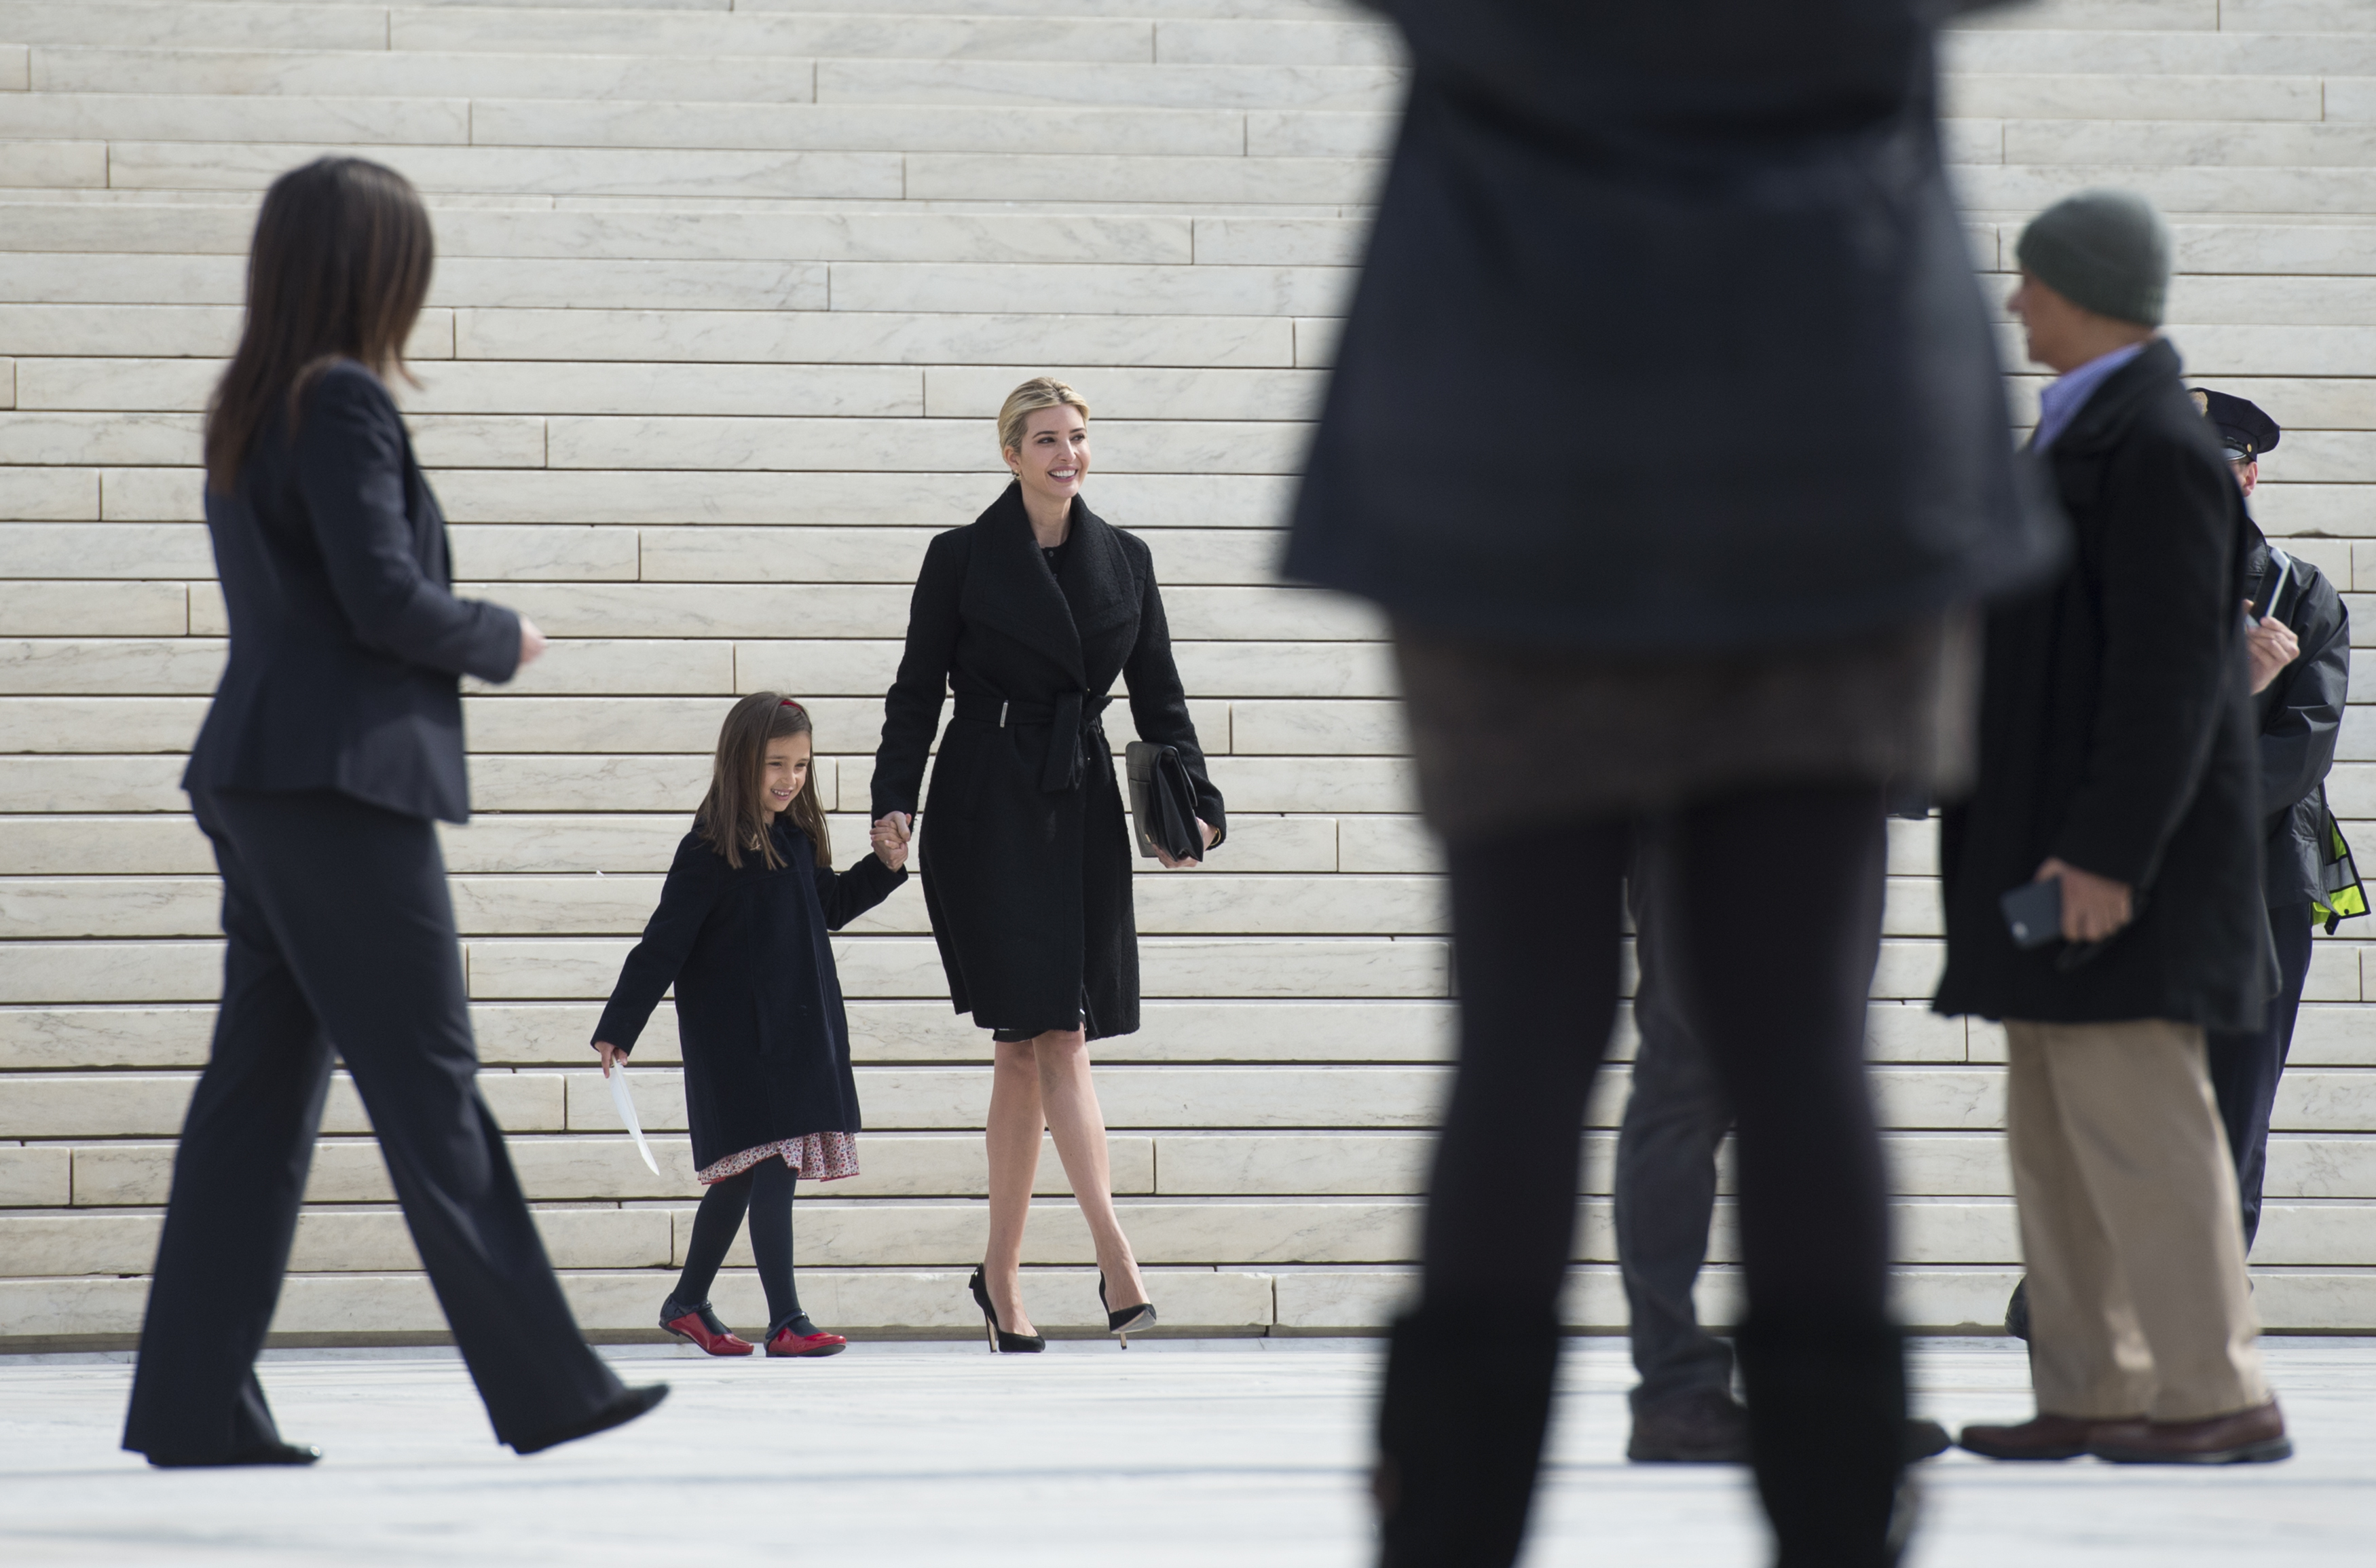 Ivanka Trump and her daughter Arabella Kushner walk down the steps of the Supreme Court in Washington on Feb. 22, 2017. (AP Photo/Molly Riley)